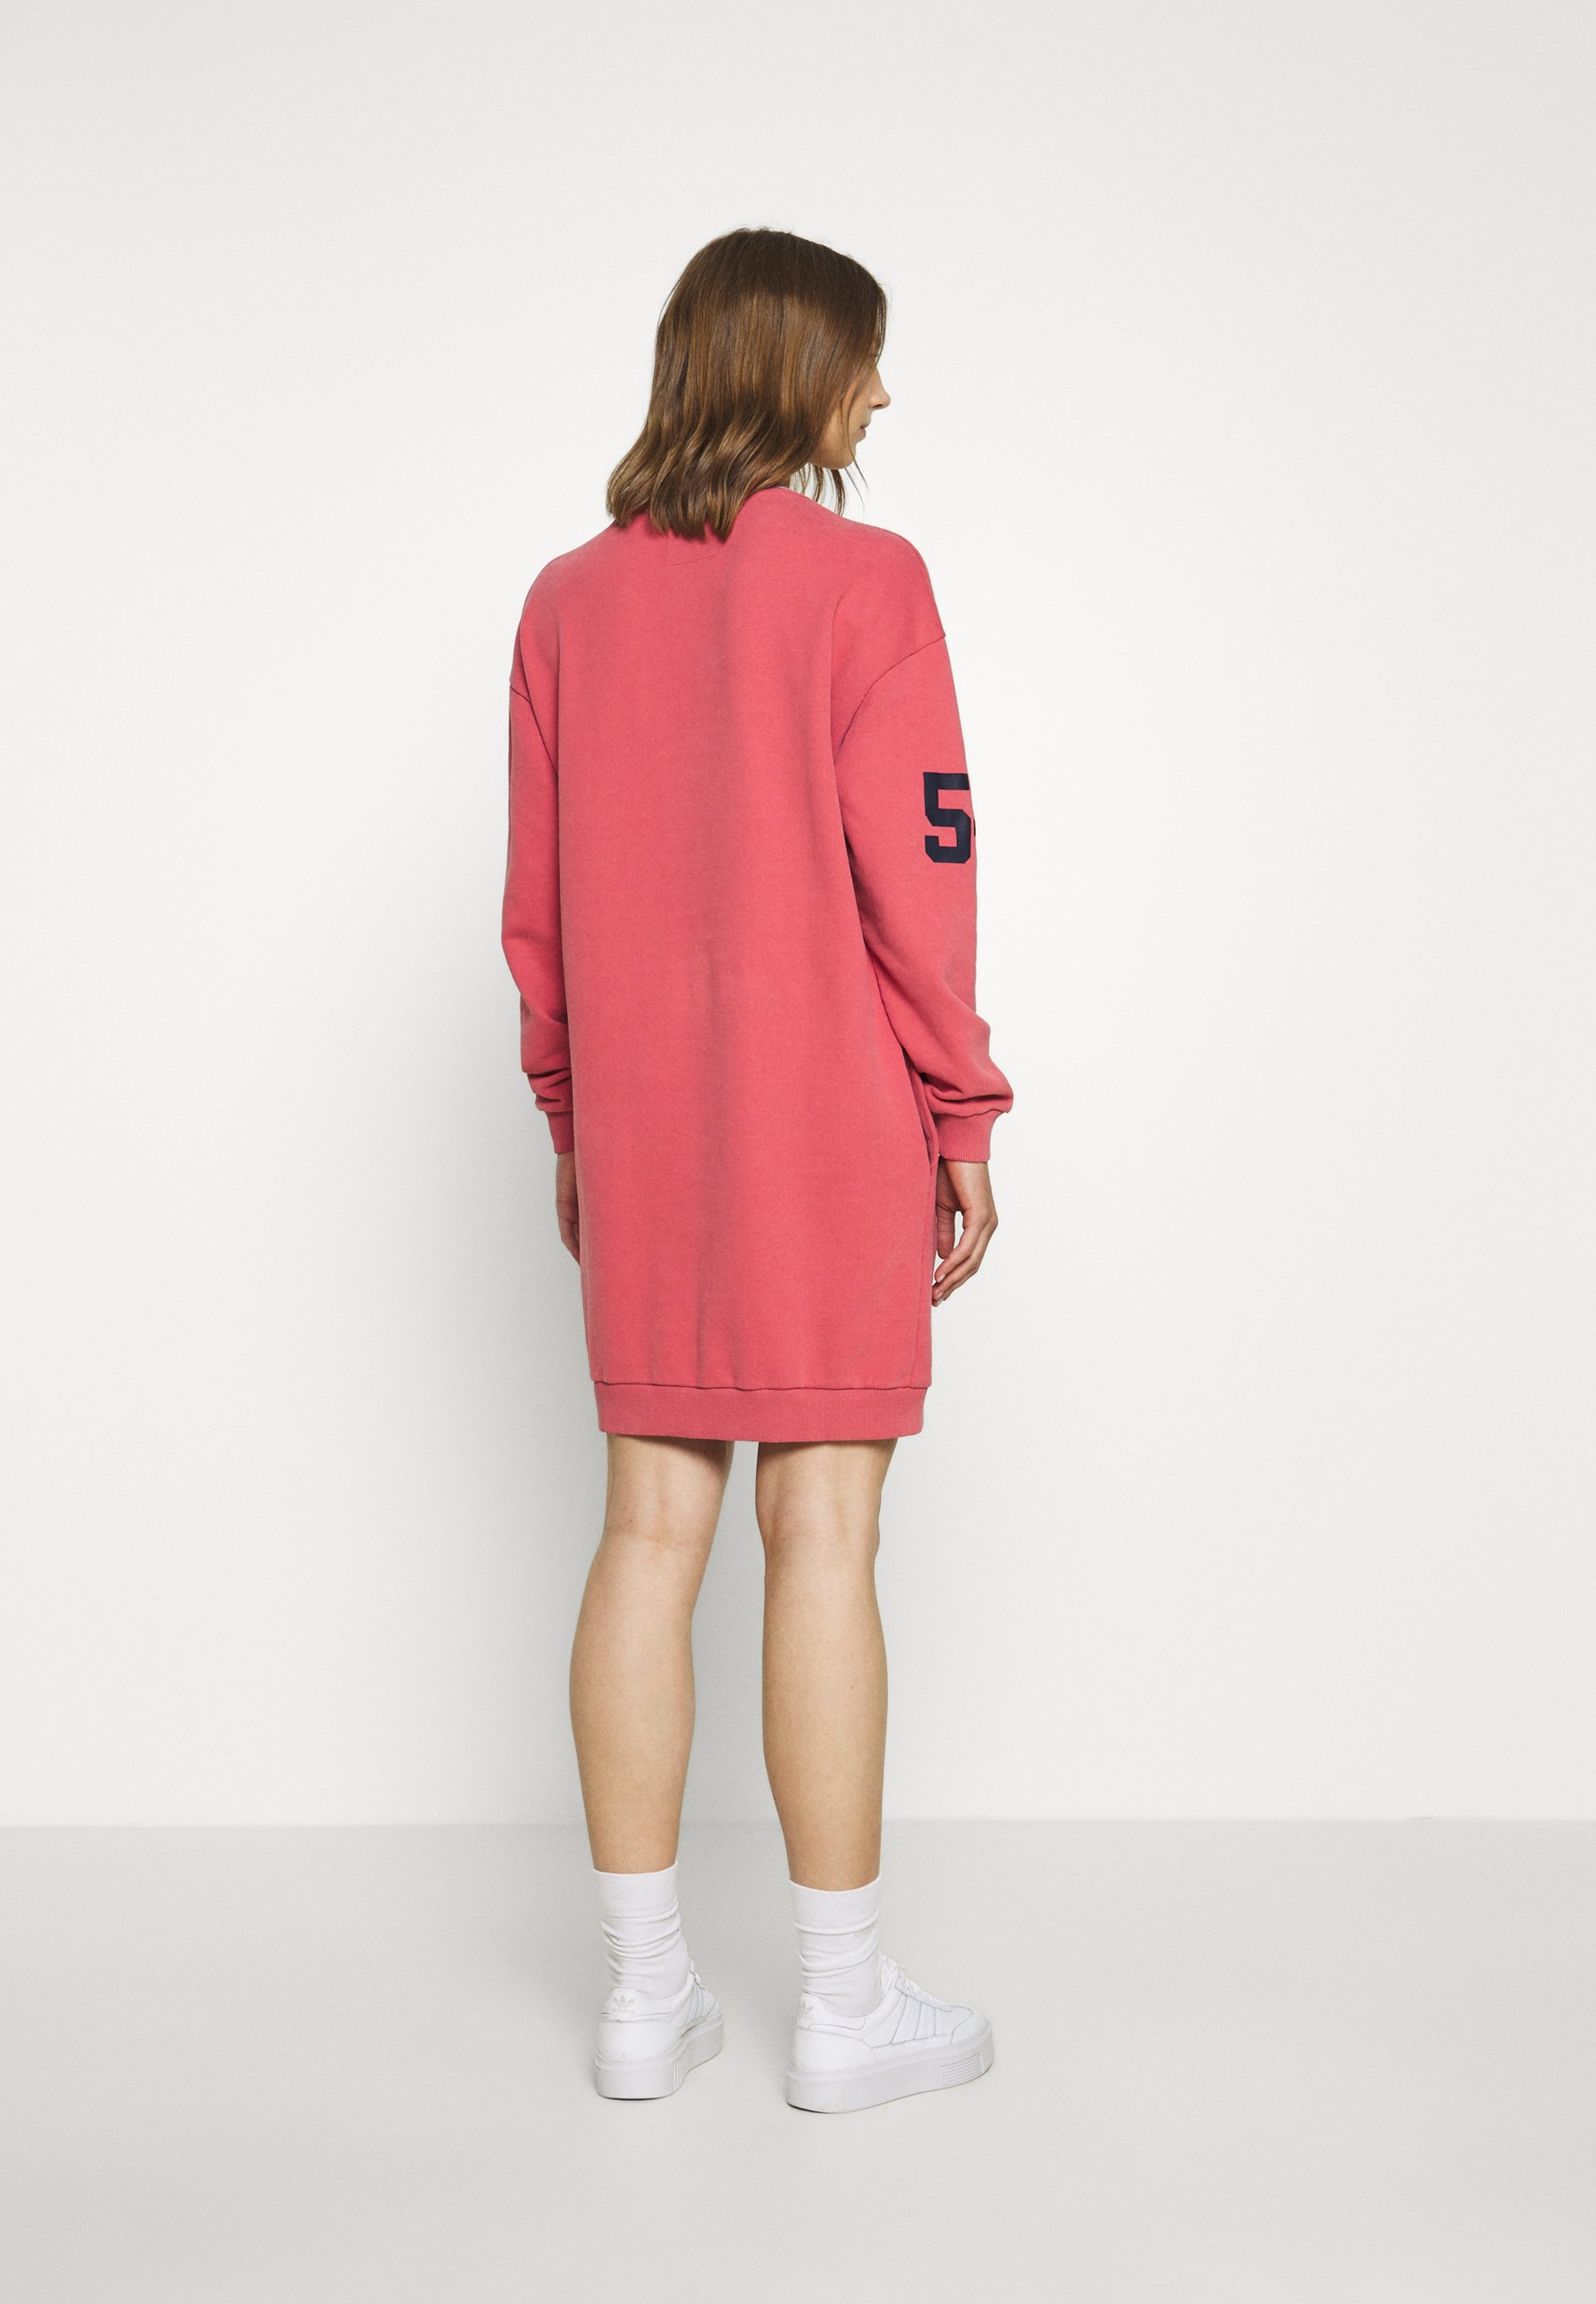 Superdry CODED SWEAT DRESS Freizeitkleid dusty pink/rosa